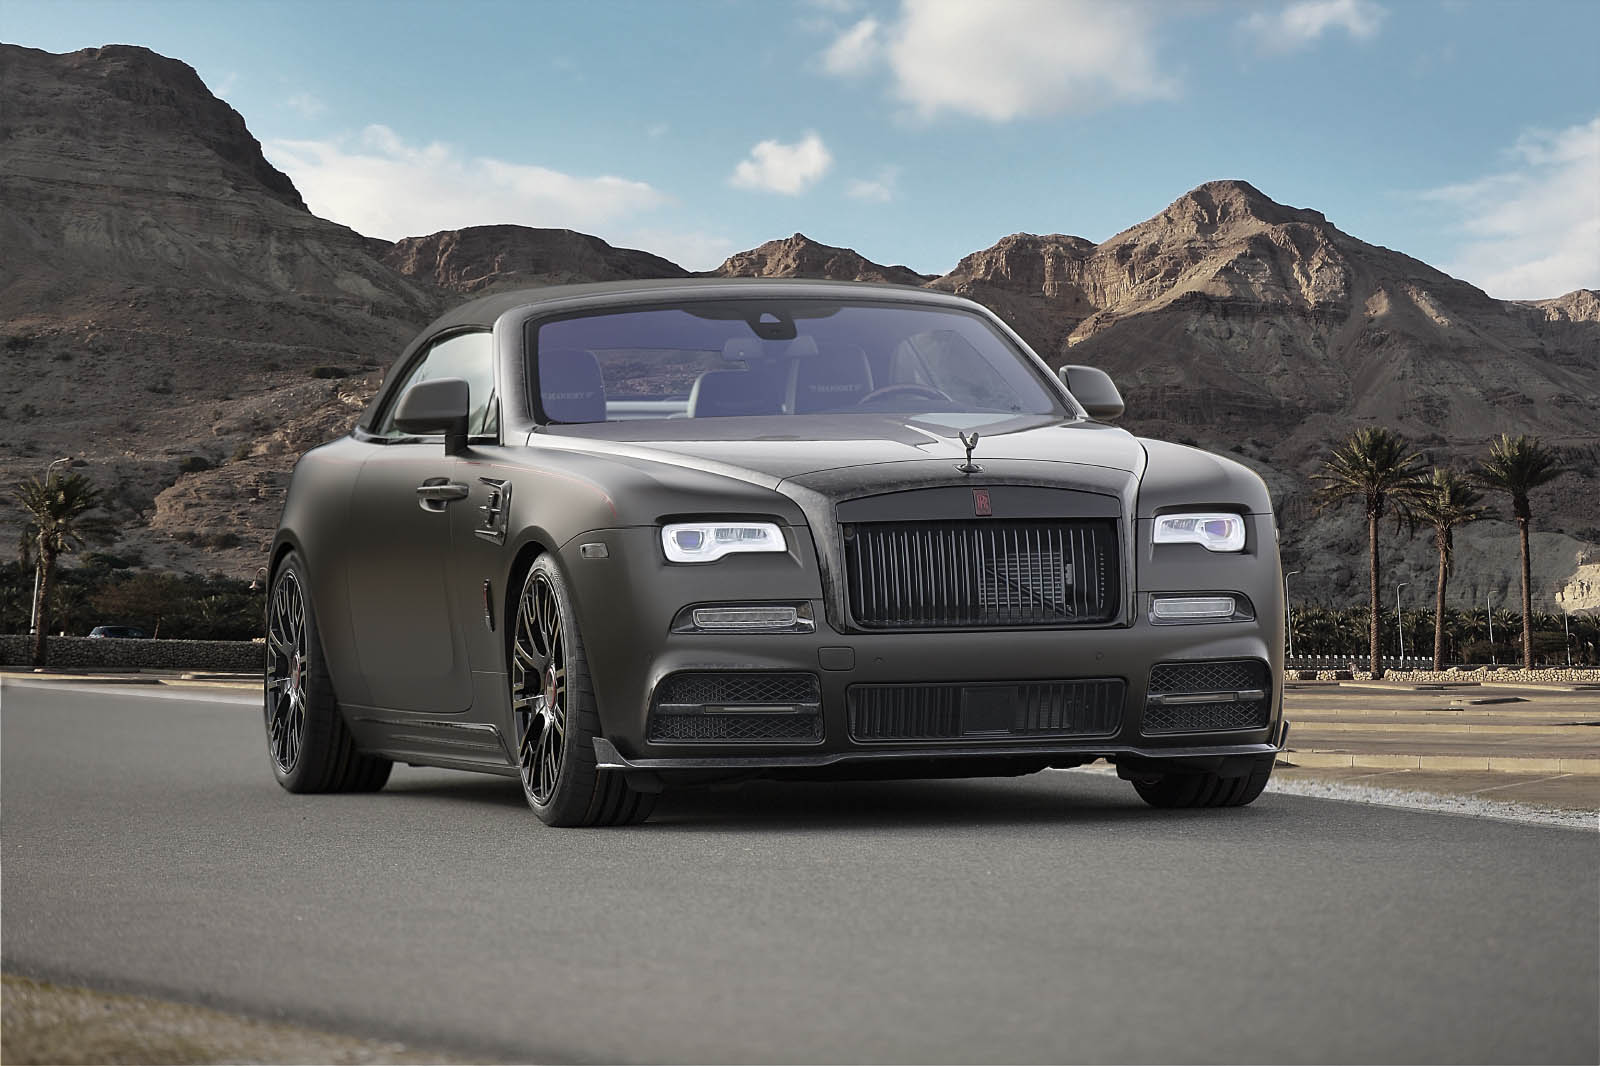 rolls royce dawn swaps elegance for sportiness in 740 hp mansory tune carscoops. Black Bedroom Furniture Sets. Home Design Ideas